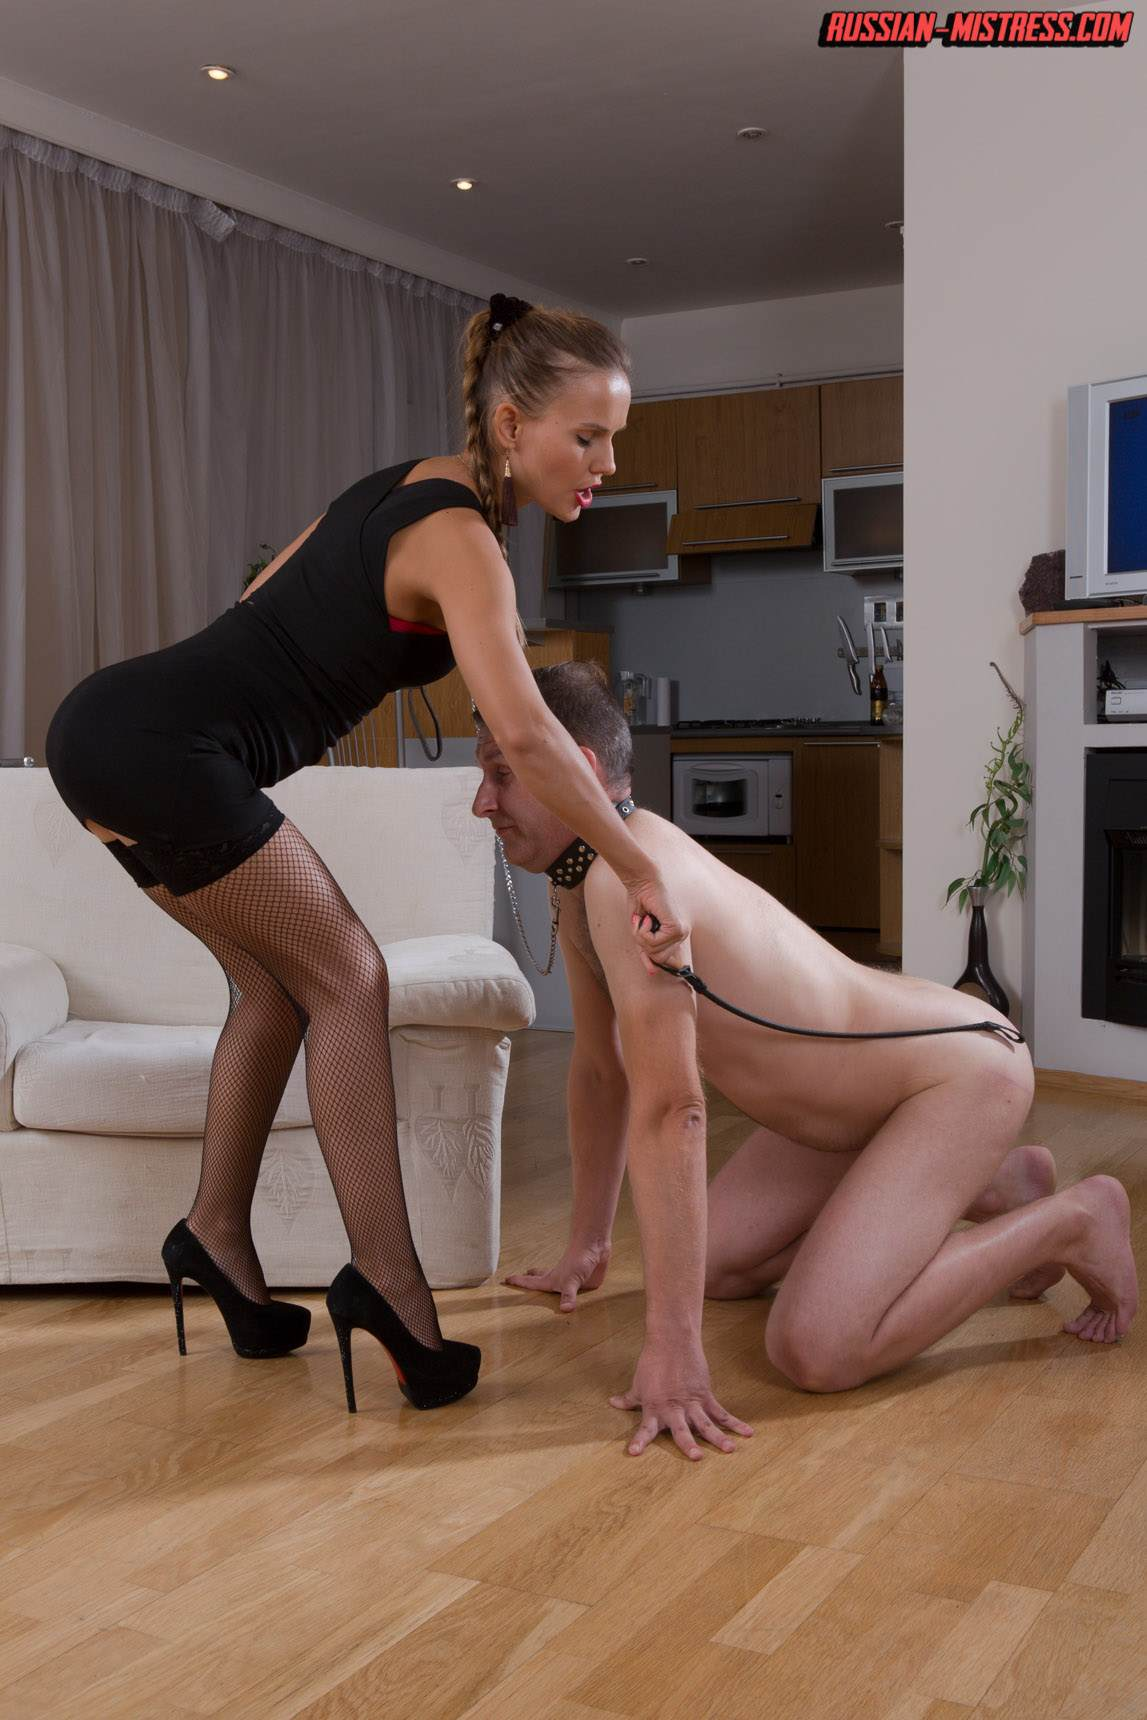 Picture #3 of Mistress is keeping slave motivated for legs worship with harsh whip lashes and then rewards him with deep anal strap-on penetration